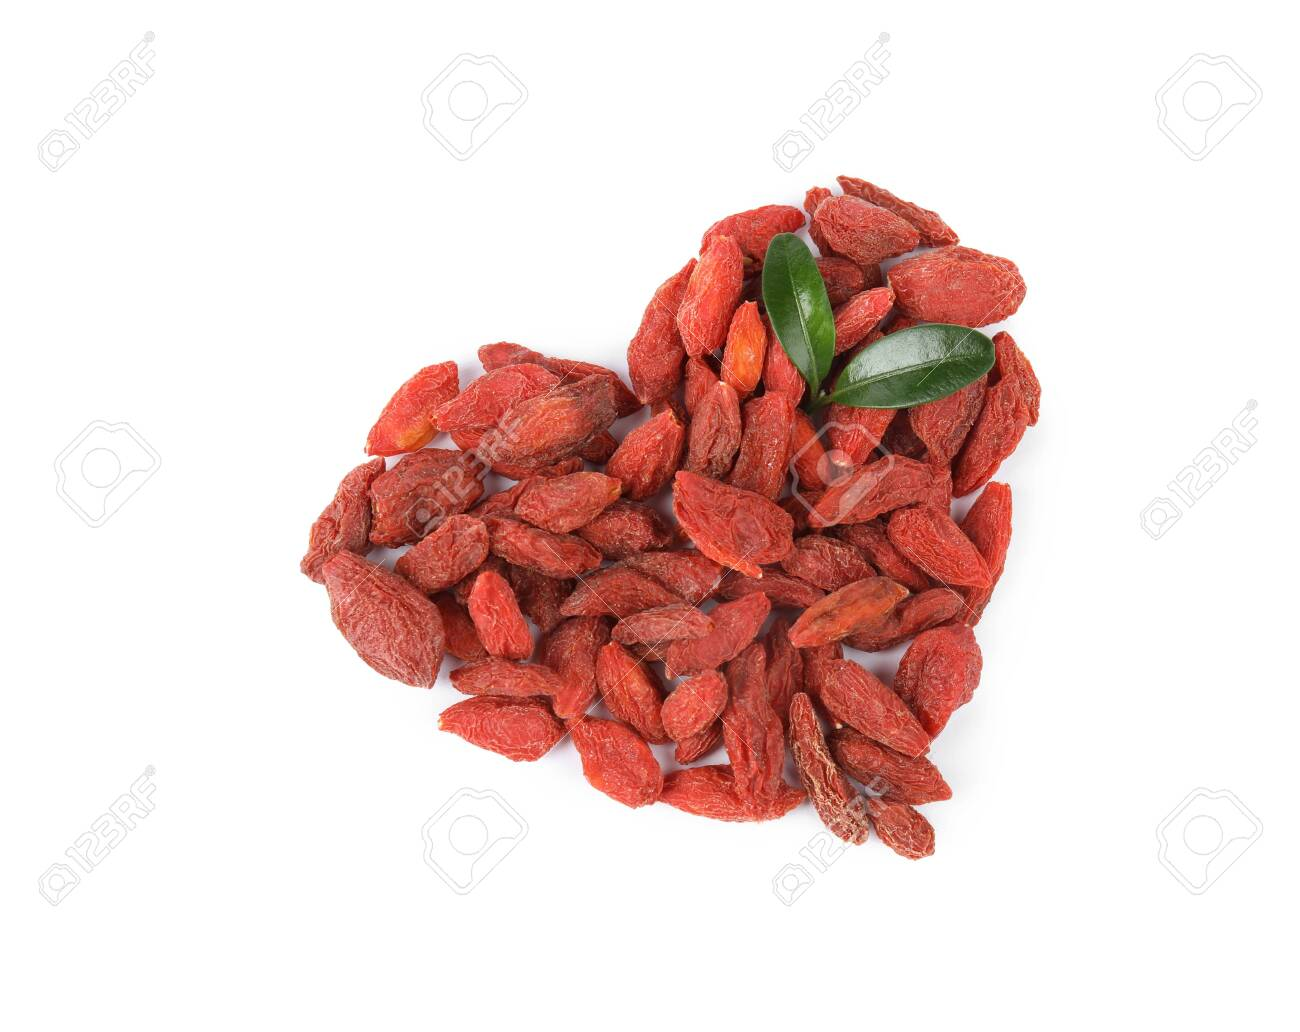 Heart Shaped Pile Of Dried Goji Berries With Leaves On White